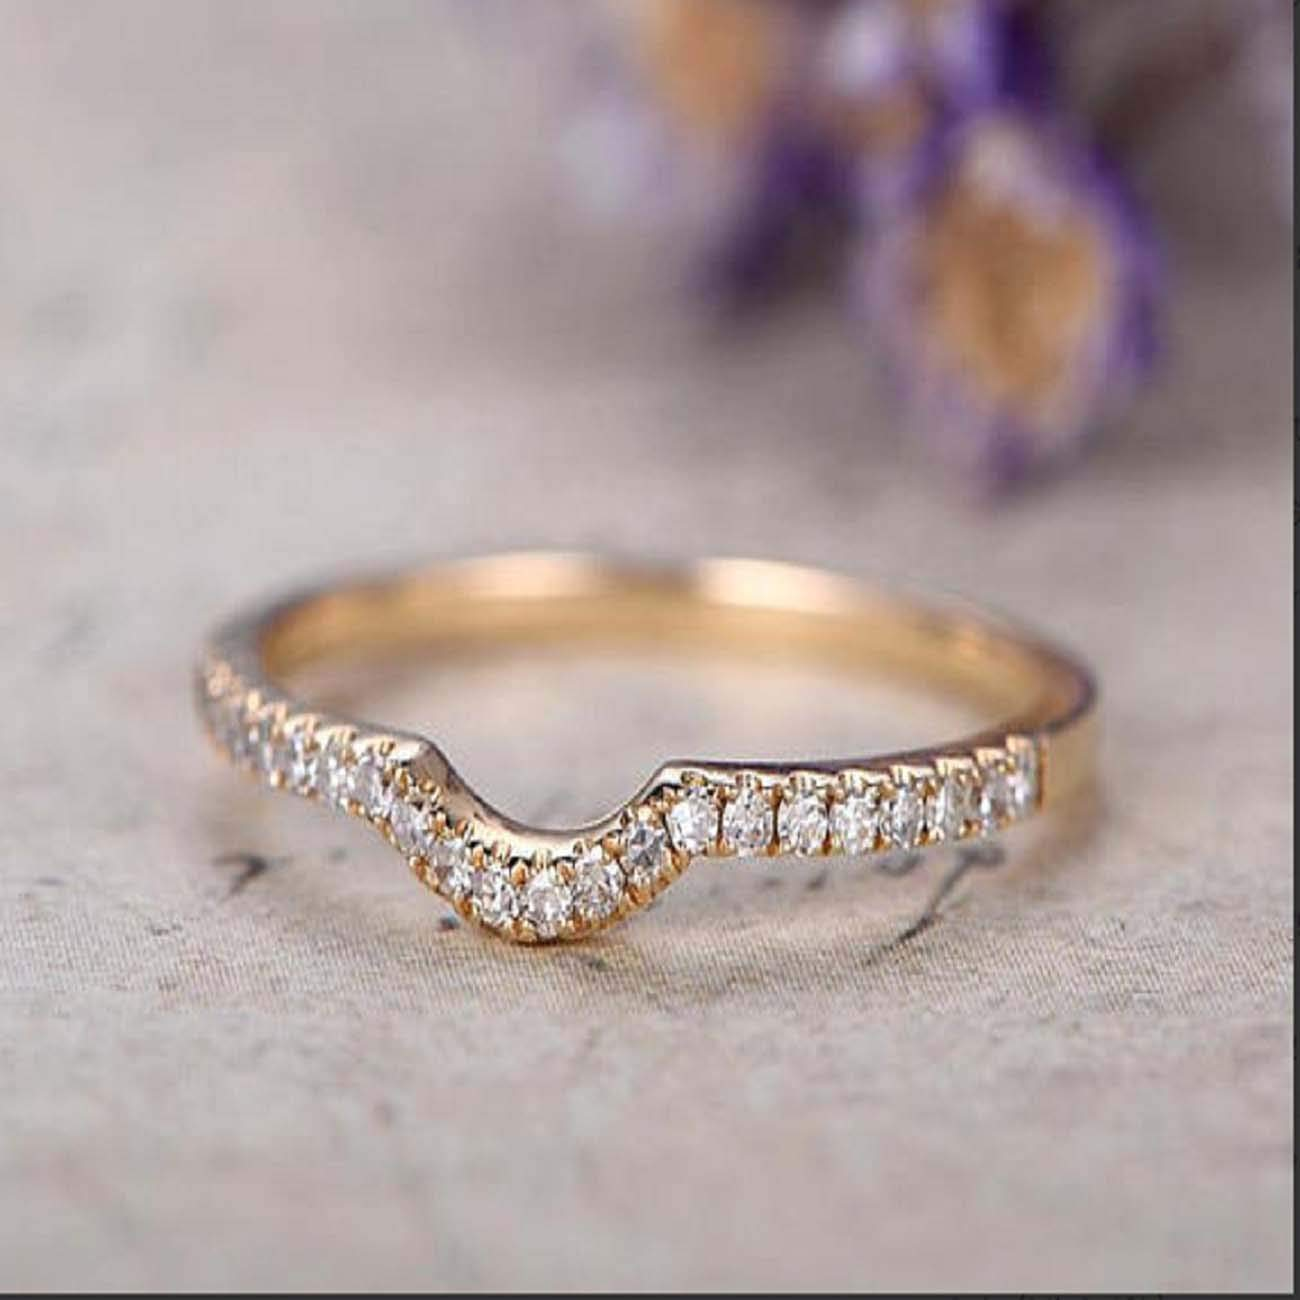 RUDRAFASHION White Diamond Wedding Anniversary Band Ring Half Eternity Curved Band 14k Yellow Gold Over .925 Sterling Silver Promise Ring for Her